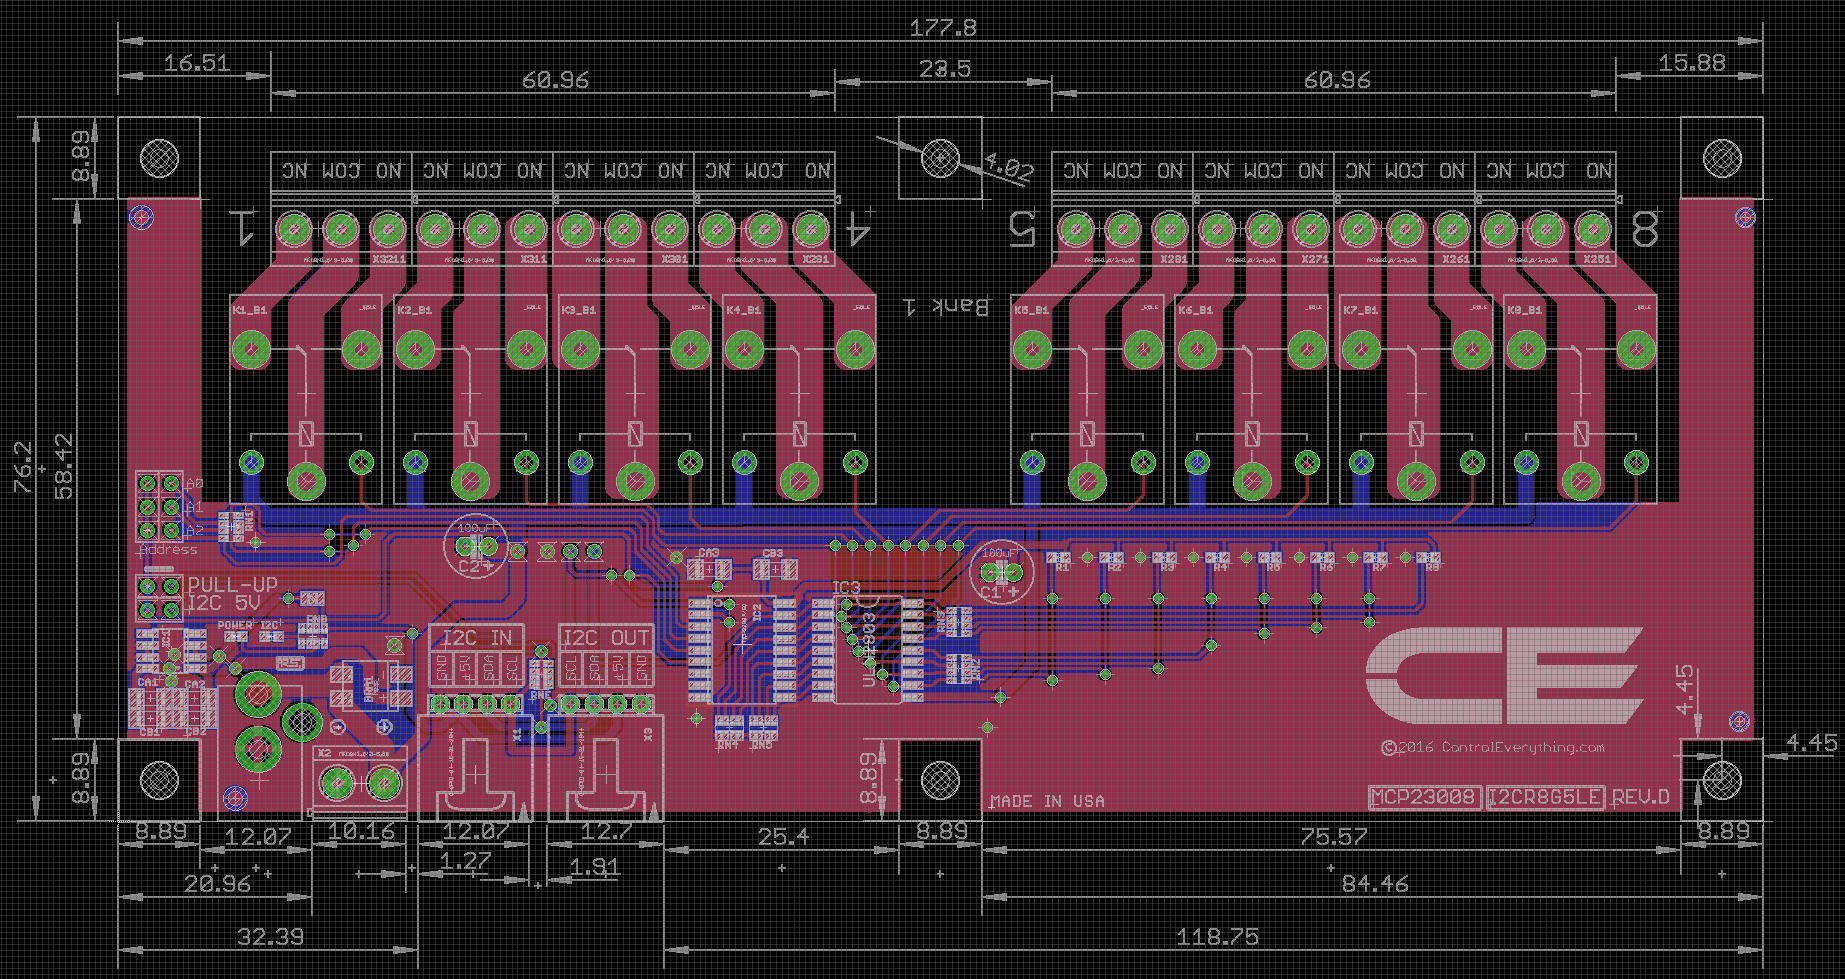 dpdt relay wiring diagram 1999 bmw z3 stereo 8 channel controller for i2c spdt 10 amp